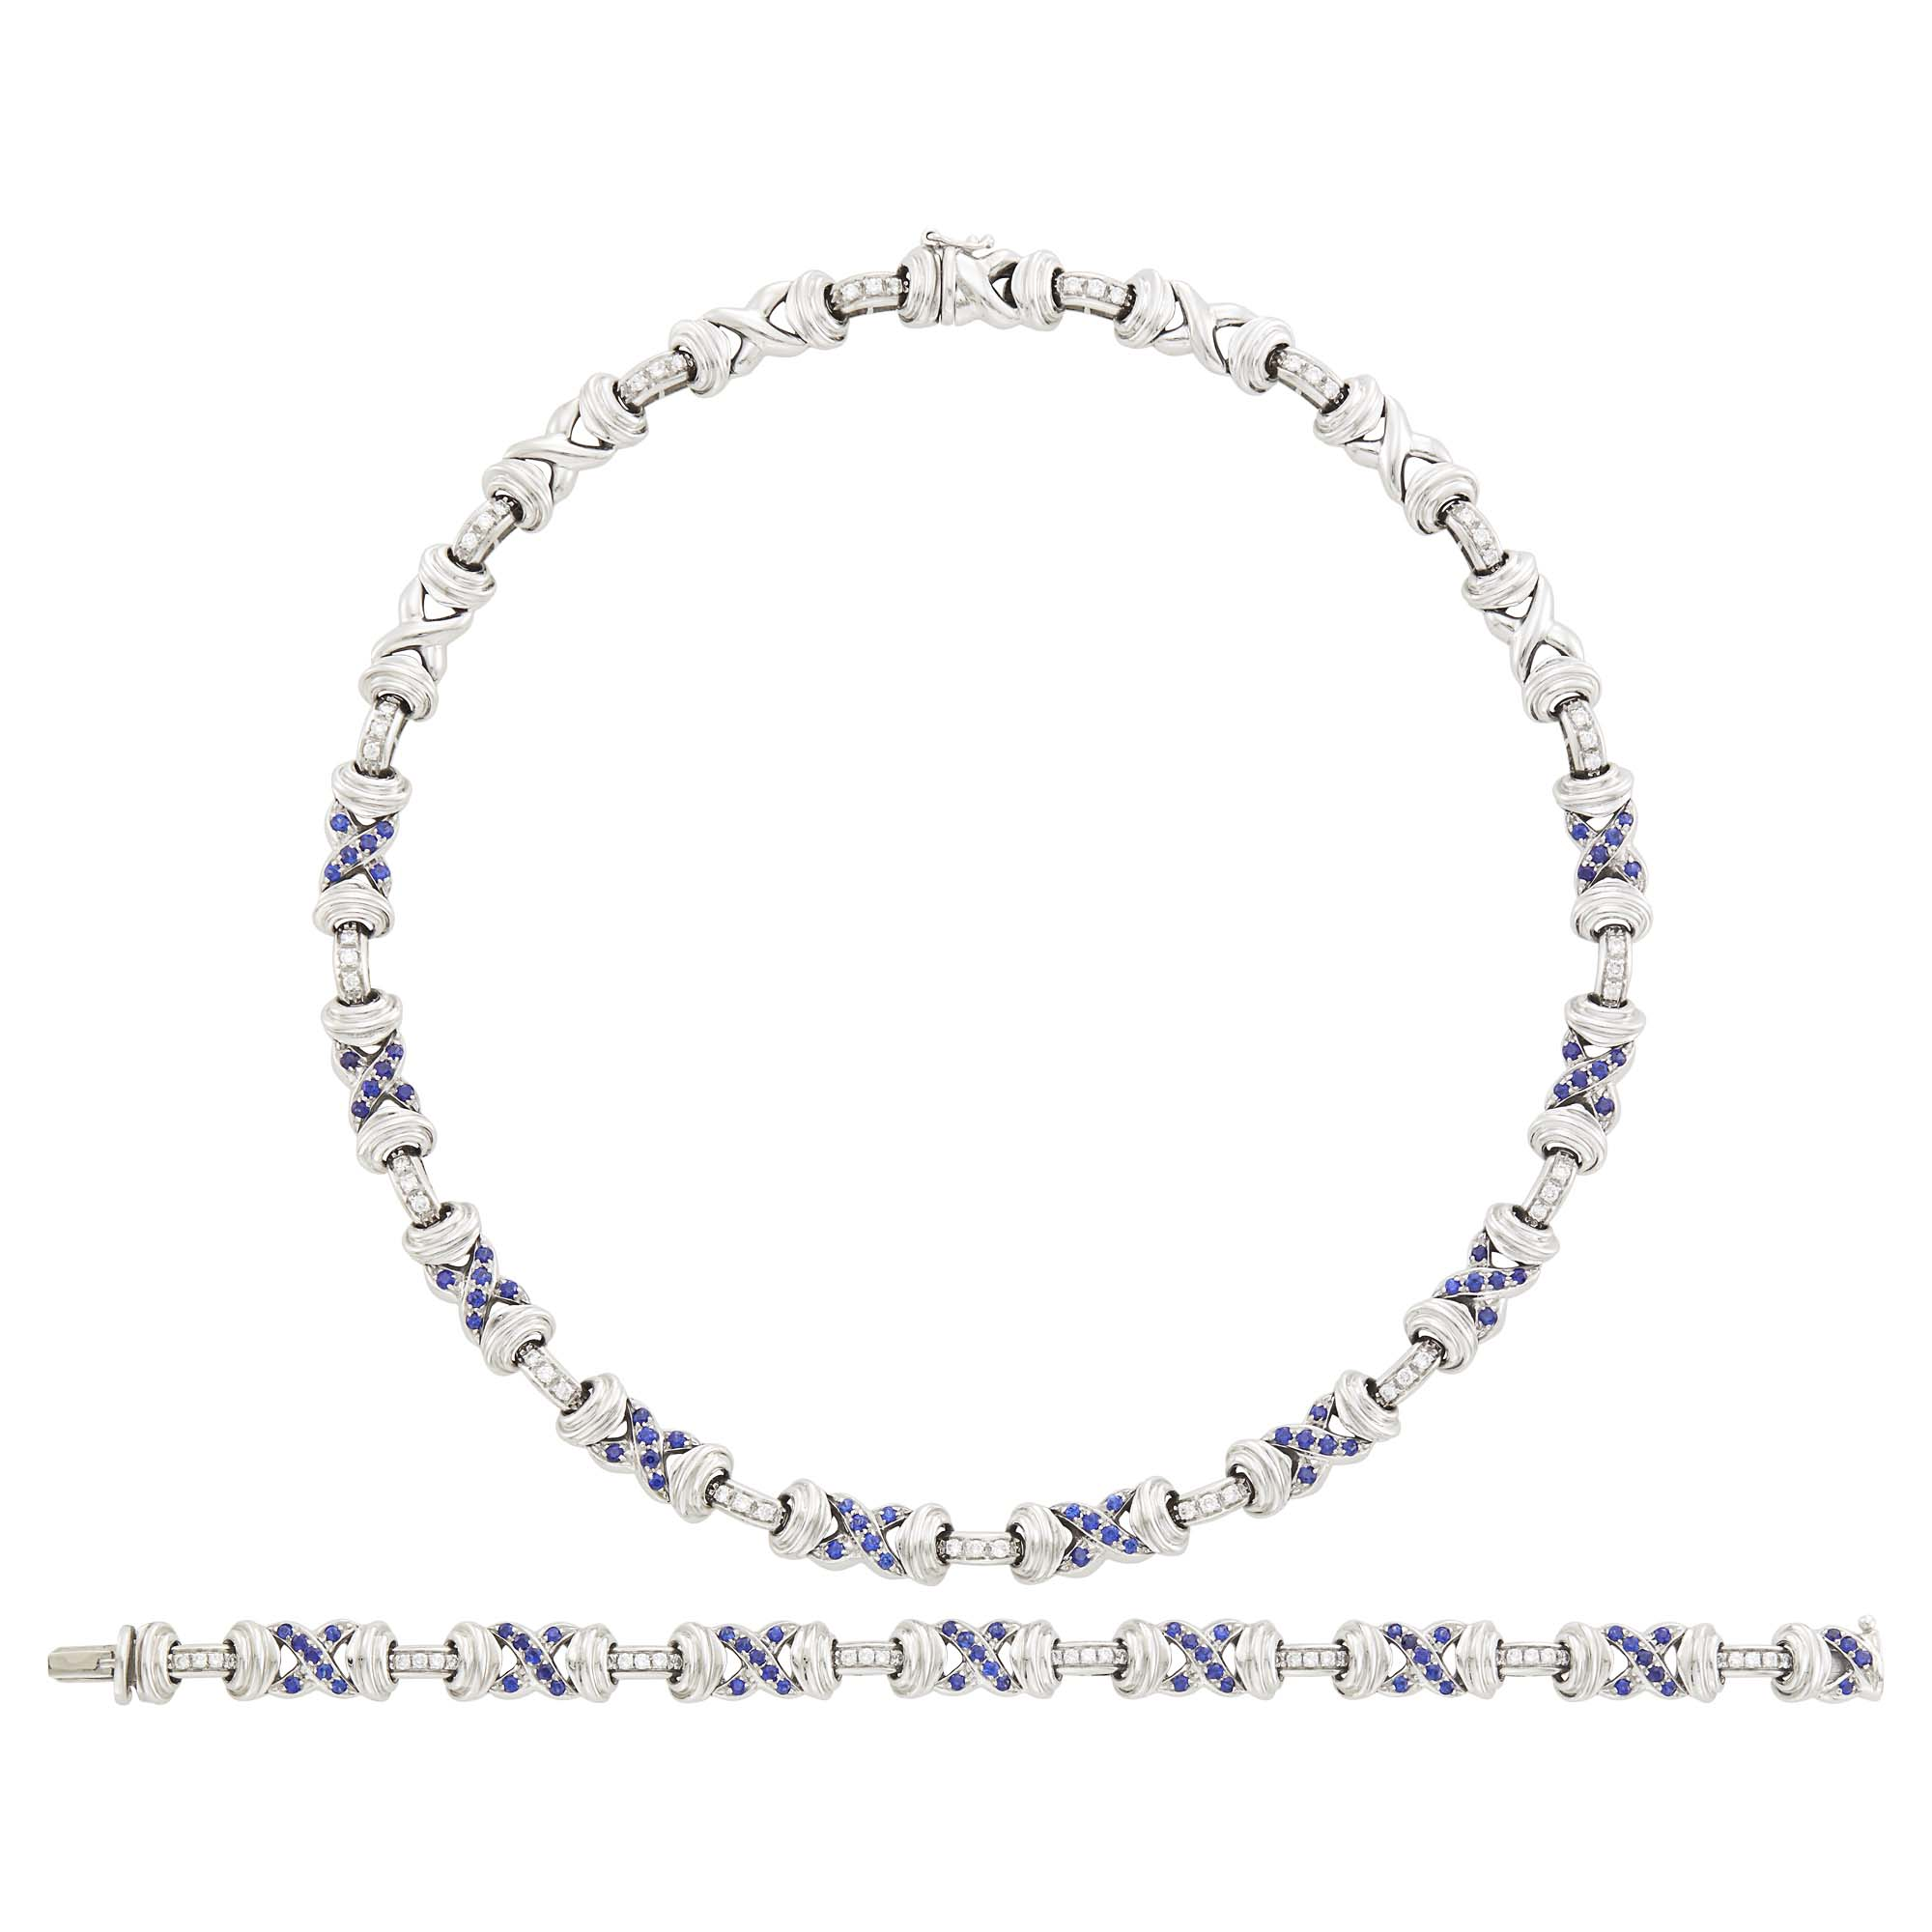 Lot image - White Gold, Diamond and Sapphire Necklace/Bracelet Combination